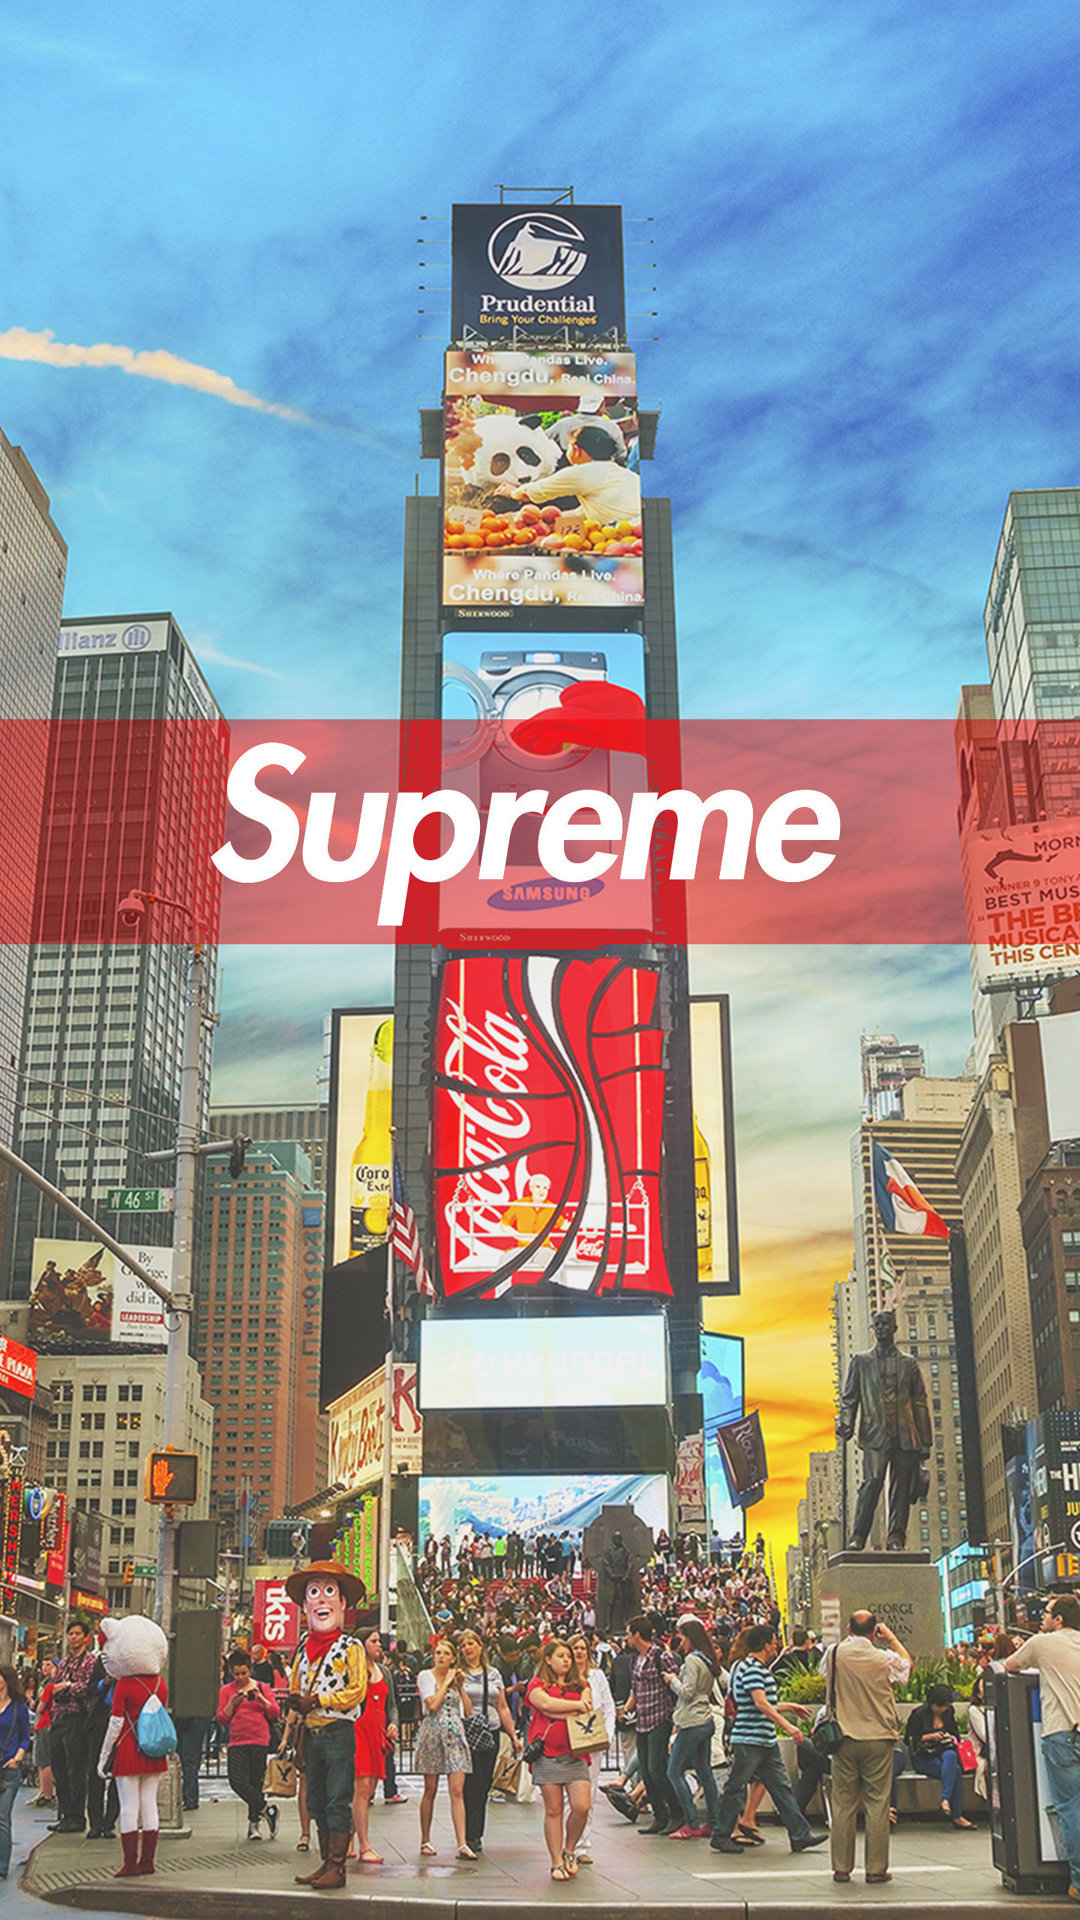 Supreme Wallpapers - Download Supreme HD Wallpapers